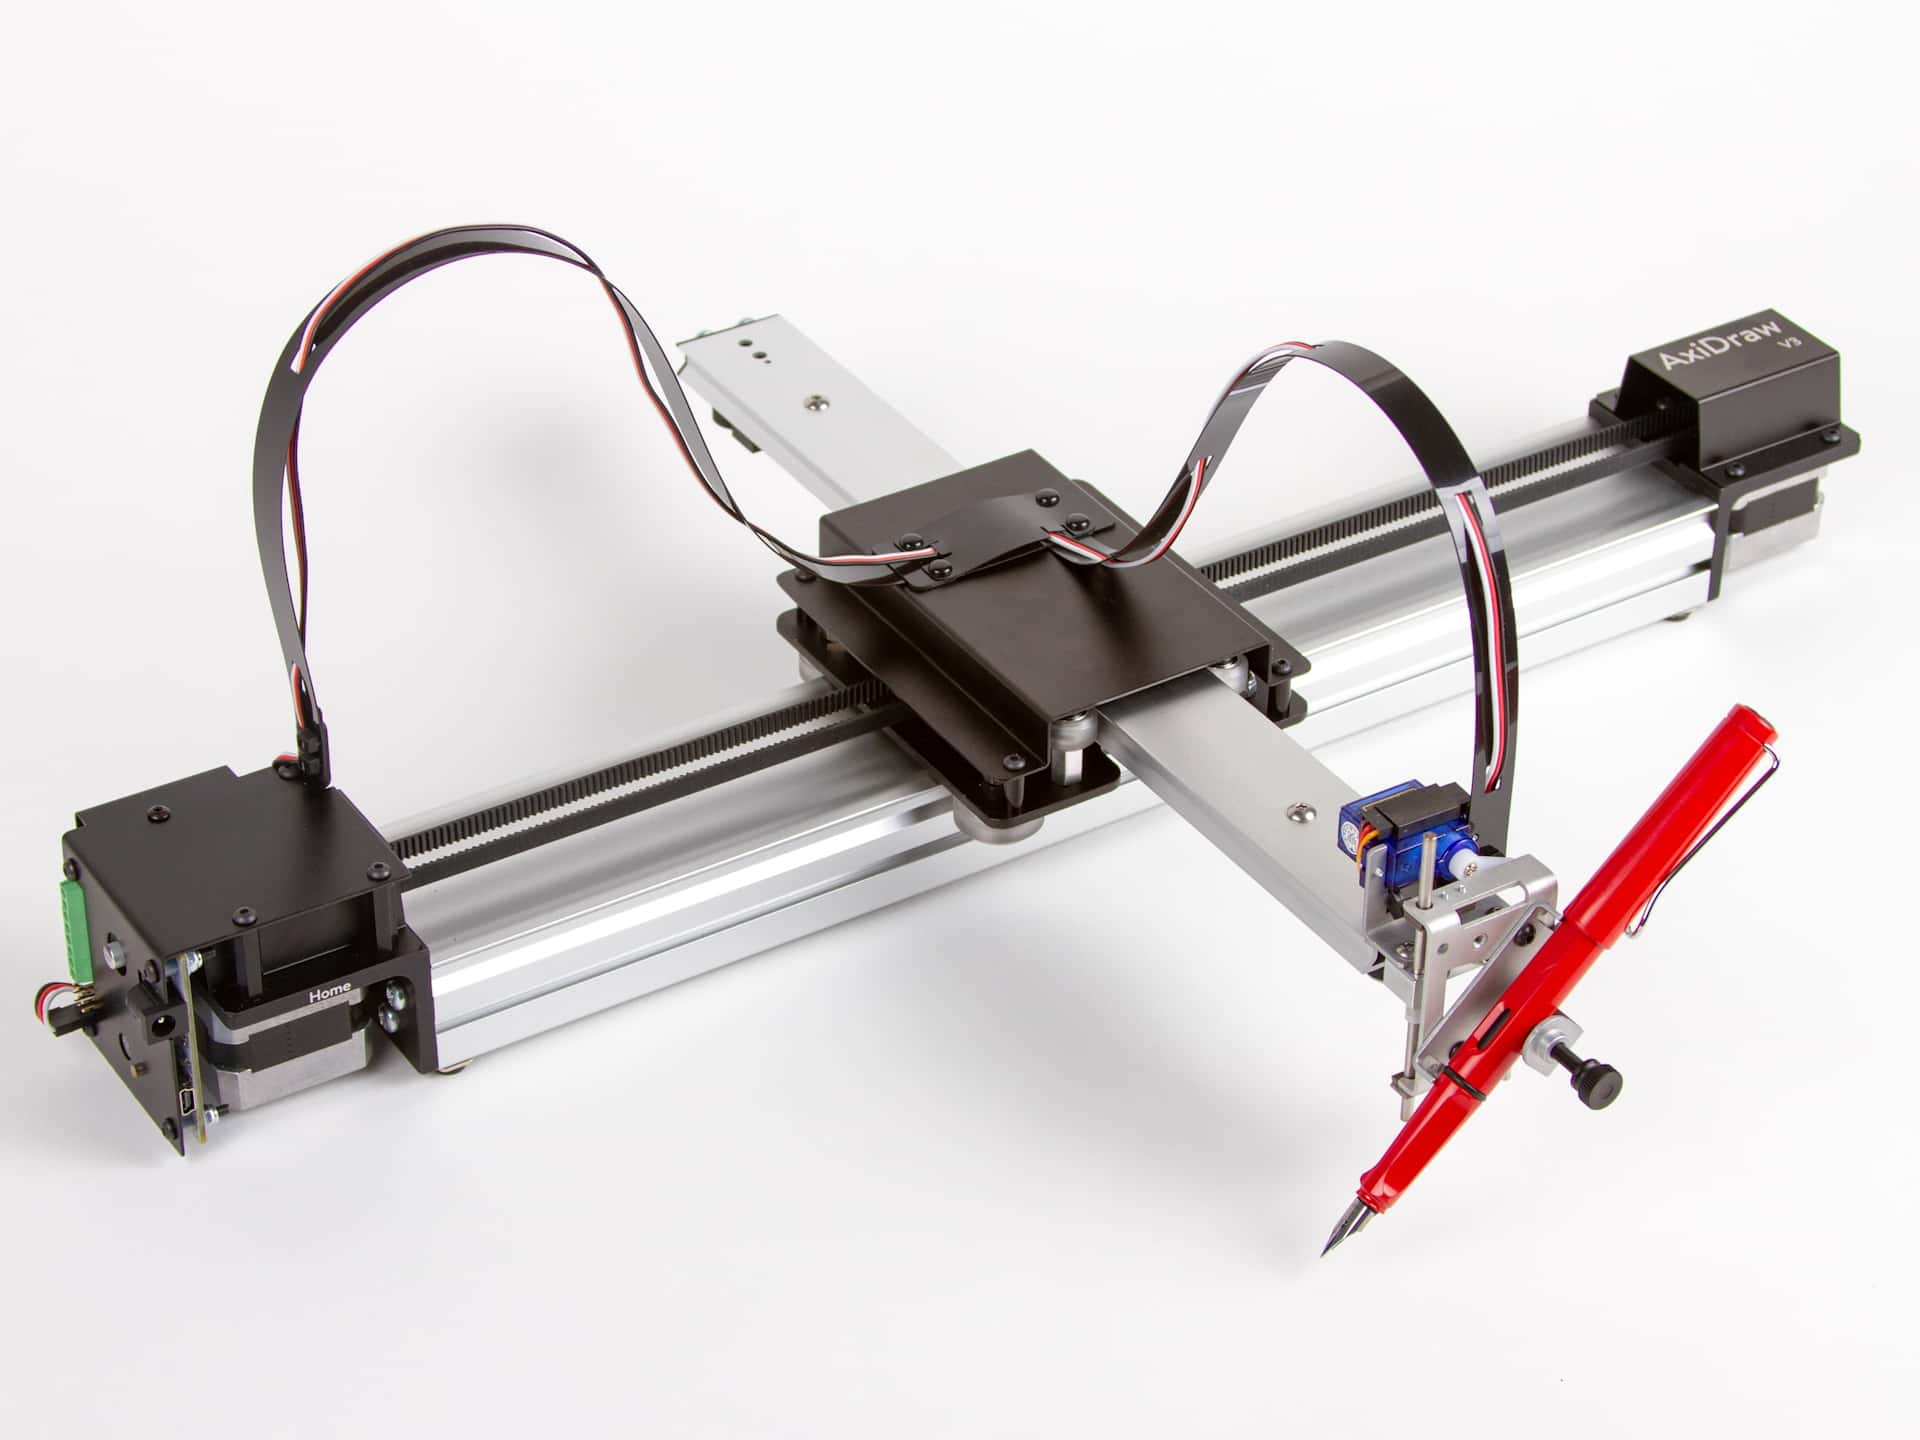 AxiDraw V3 (larger image)